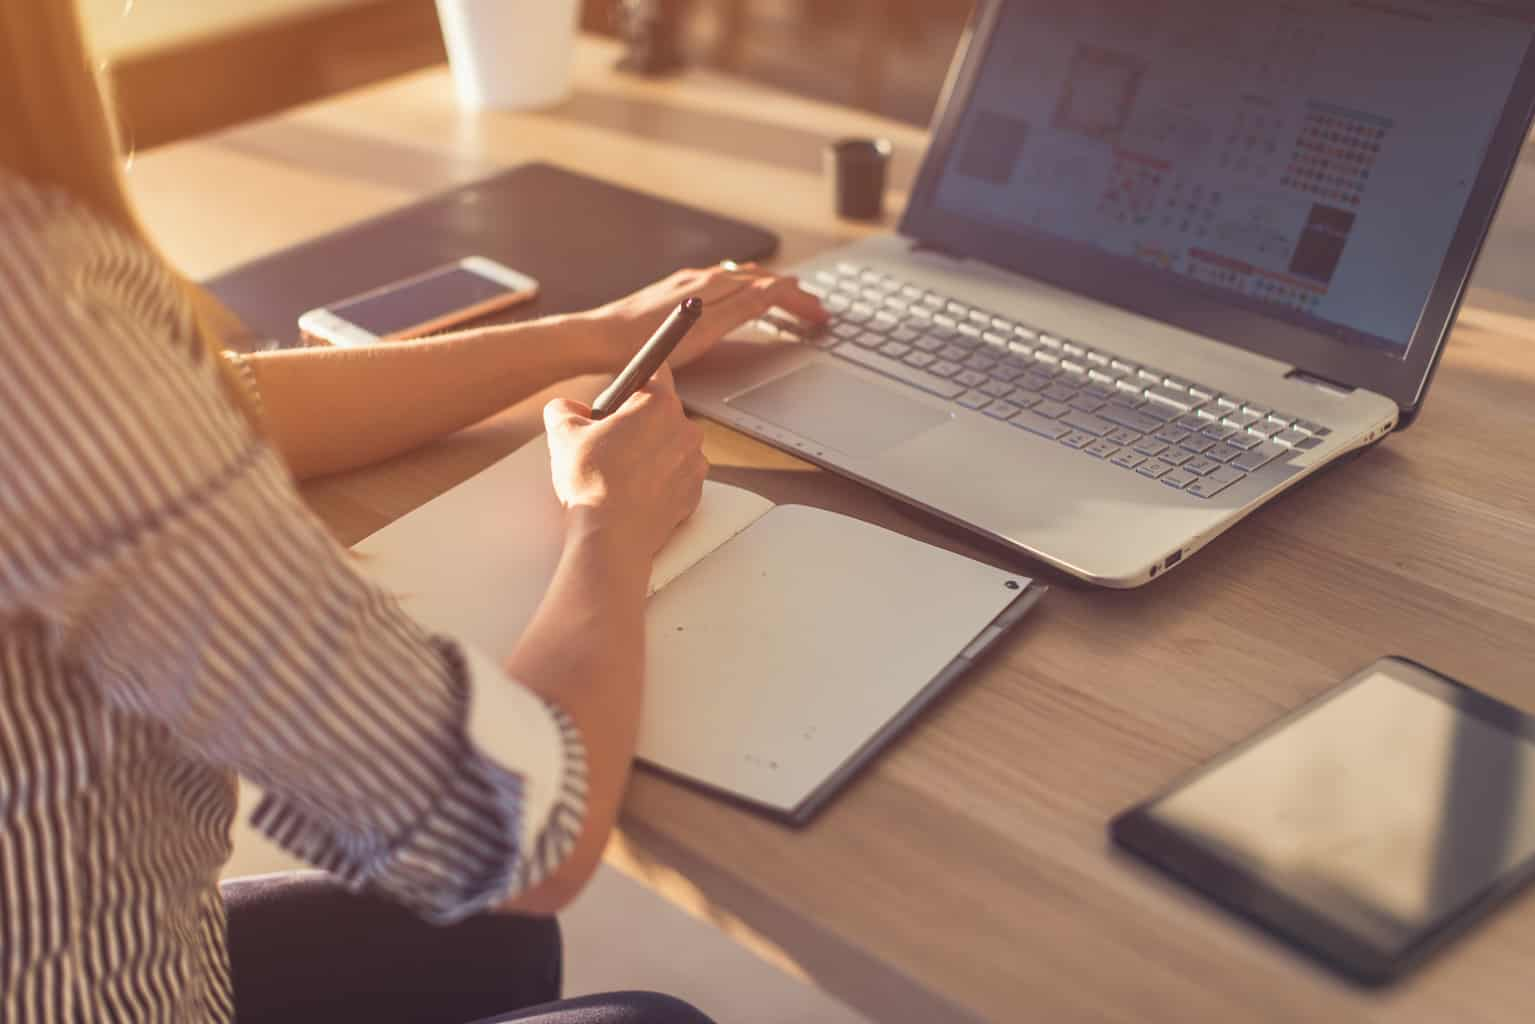 Female designer using laptop, sketching at blank notepad. Woman hand writing in notebook on wooden desk.